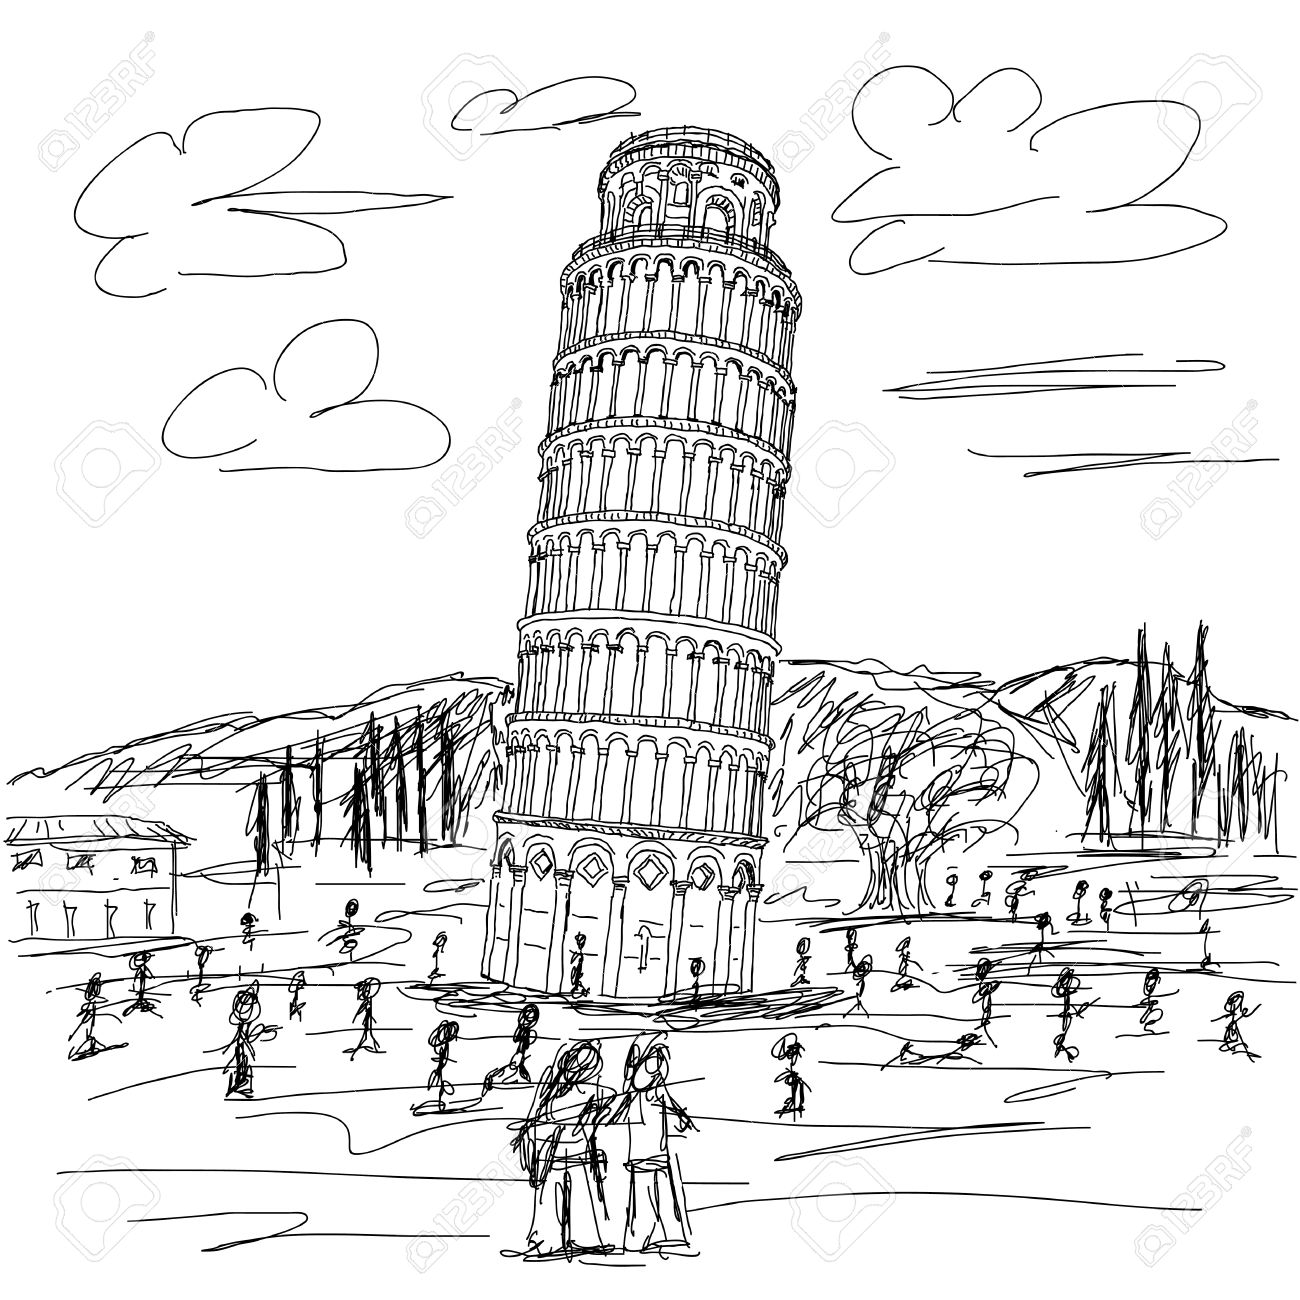 pisa drawing antique illustration of leaning tower of pisa stock pisa drawing